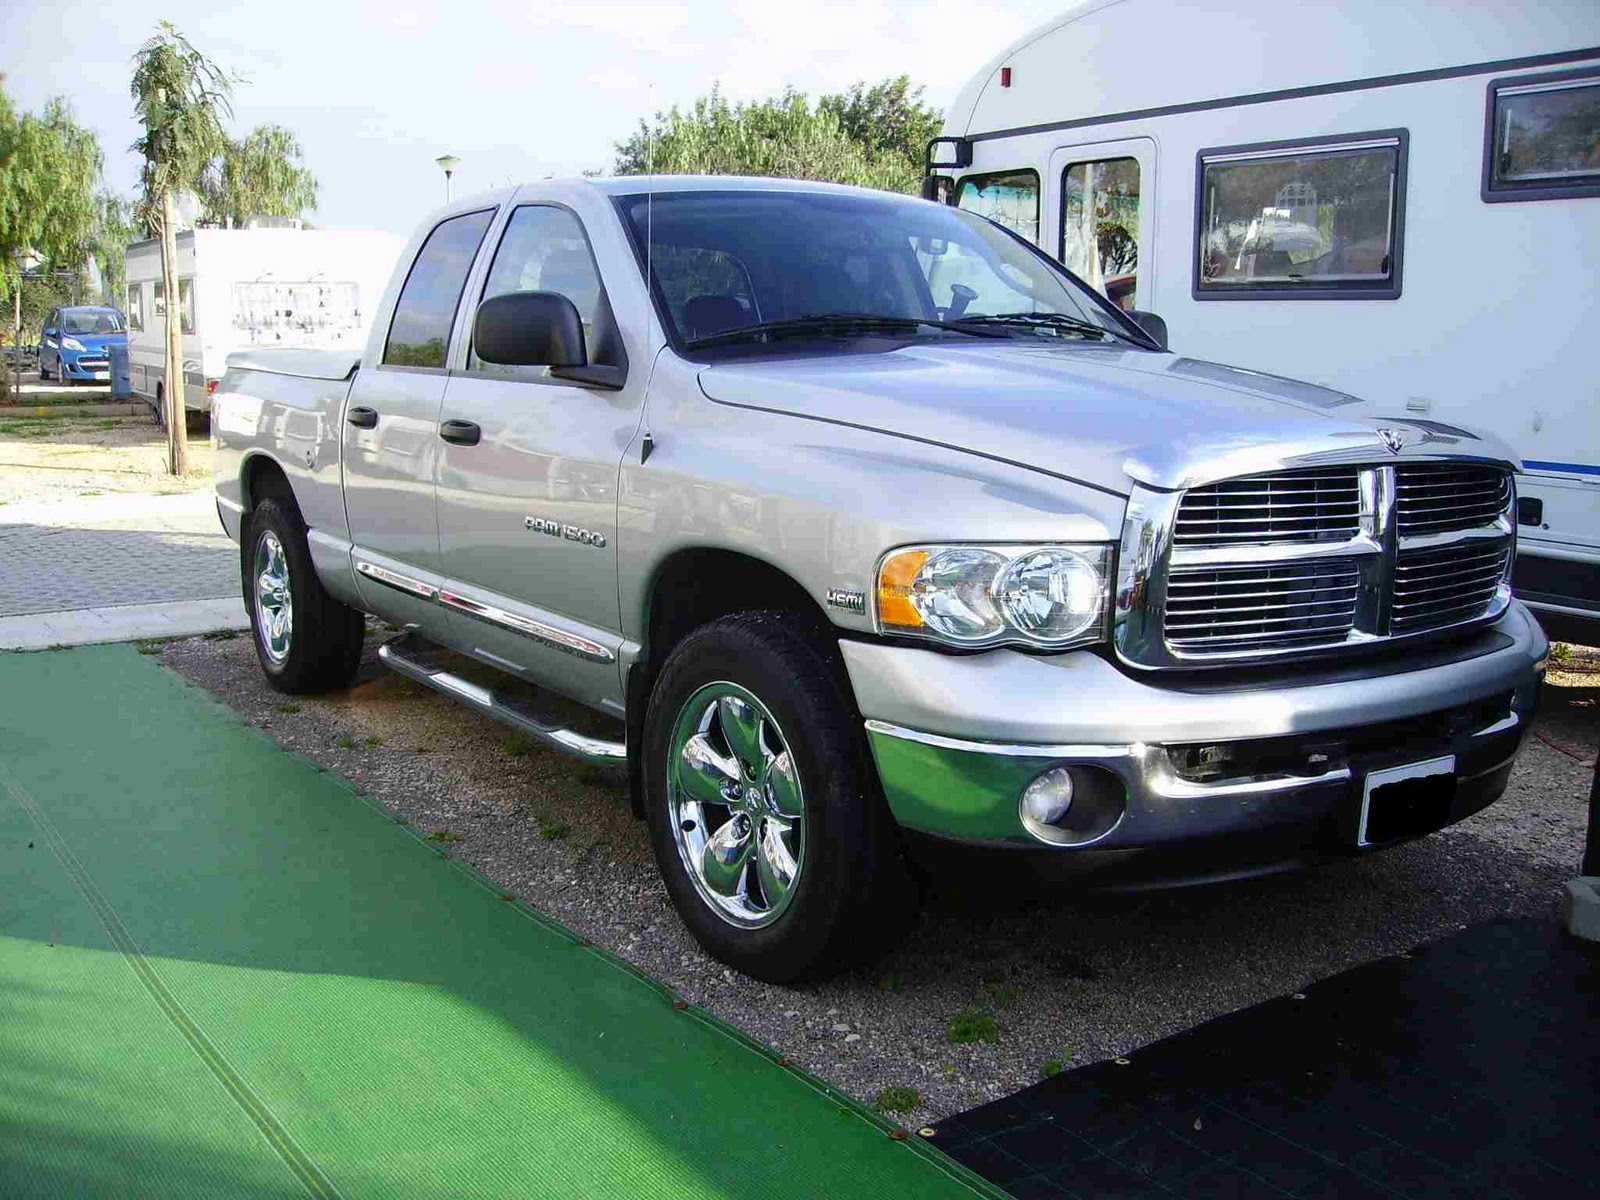 Fendt Platin 650 Tmf 2004 Dodge Ram 1500 For Sale For